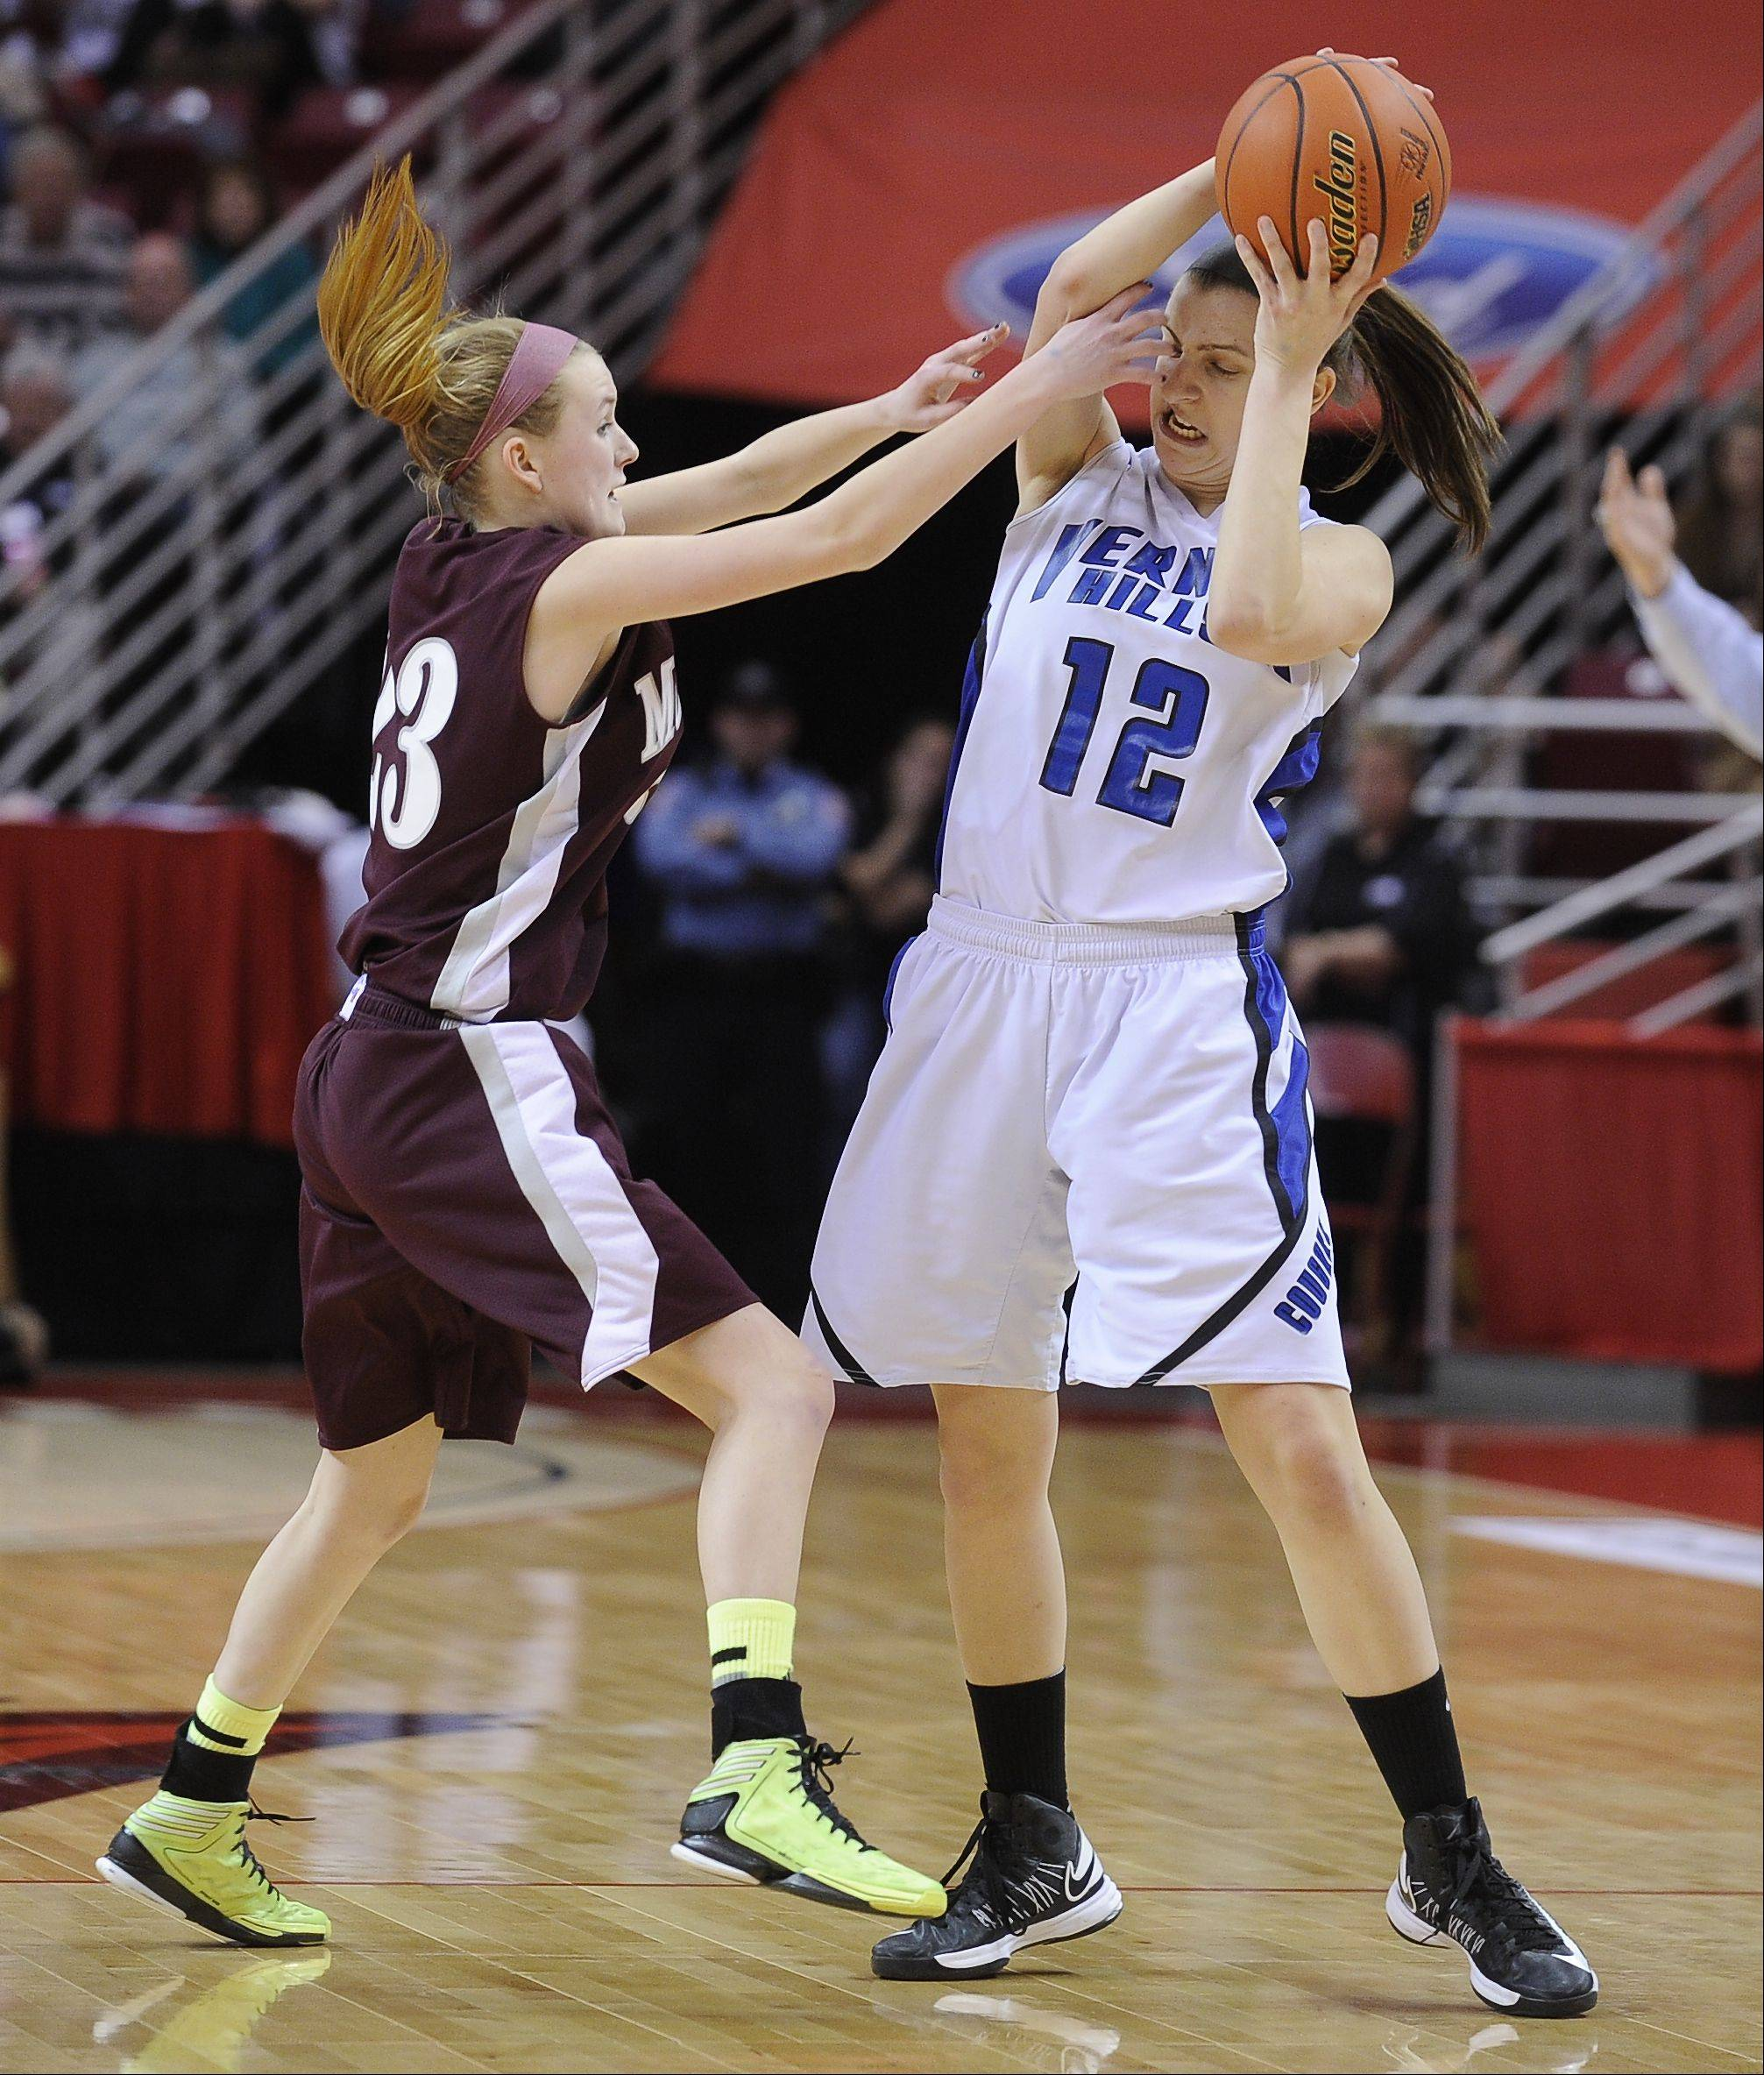 Images from the Vernon Hills vs. Montini in the IHSA Class 3A girls state basketball semifinal on Friday, Mar. 1 at the Redbird Arena in Normal.